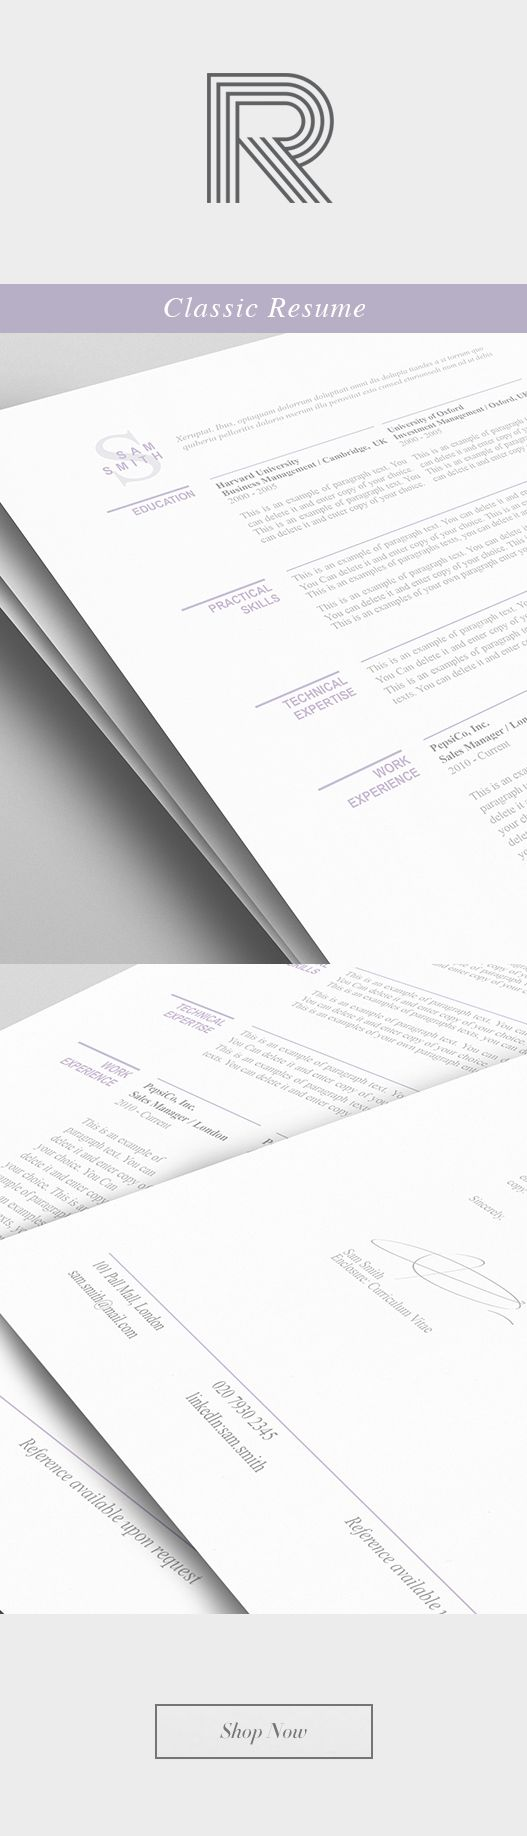 126 best images about resume curriculum vitae on pinterest